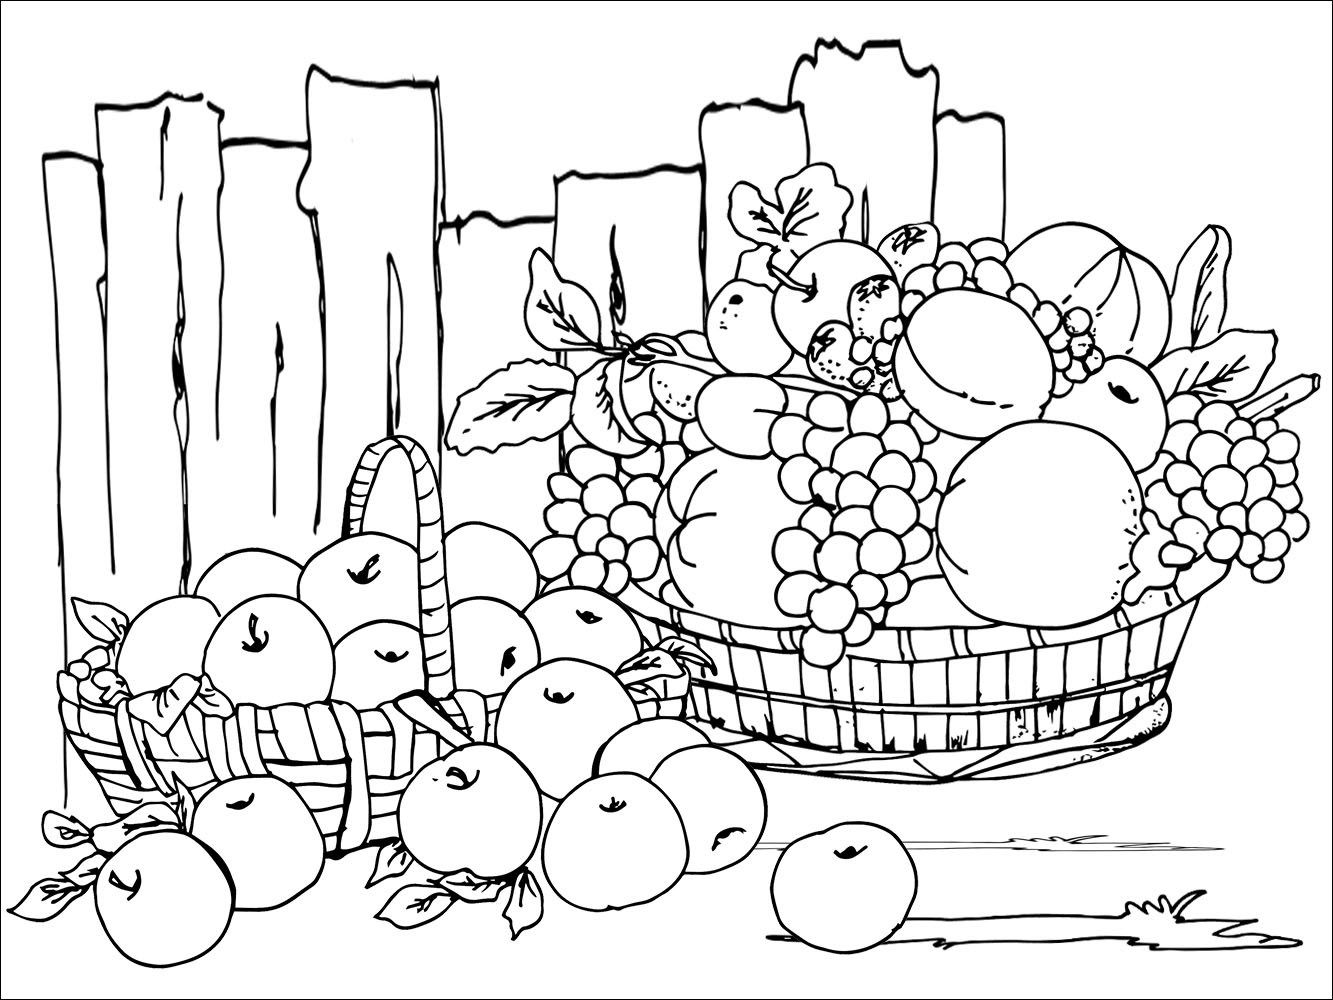 Harvest Festival Colouring Sheet | Coloring Sheets